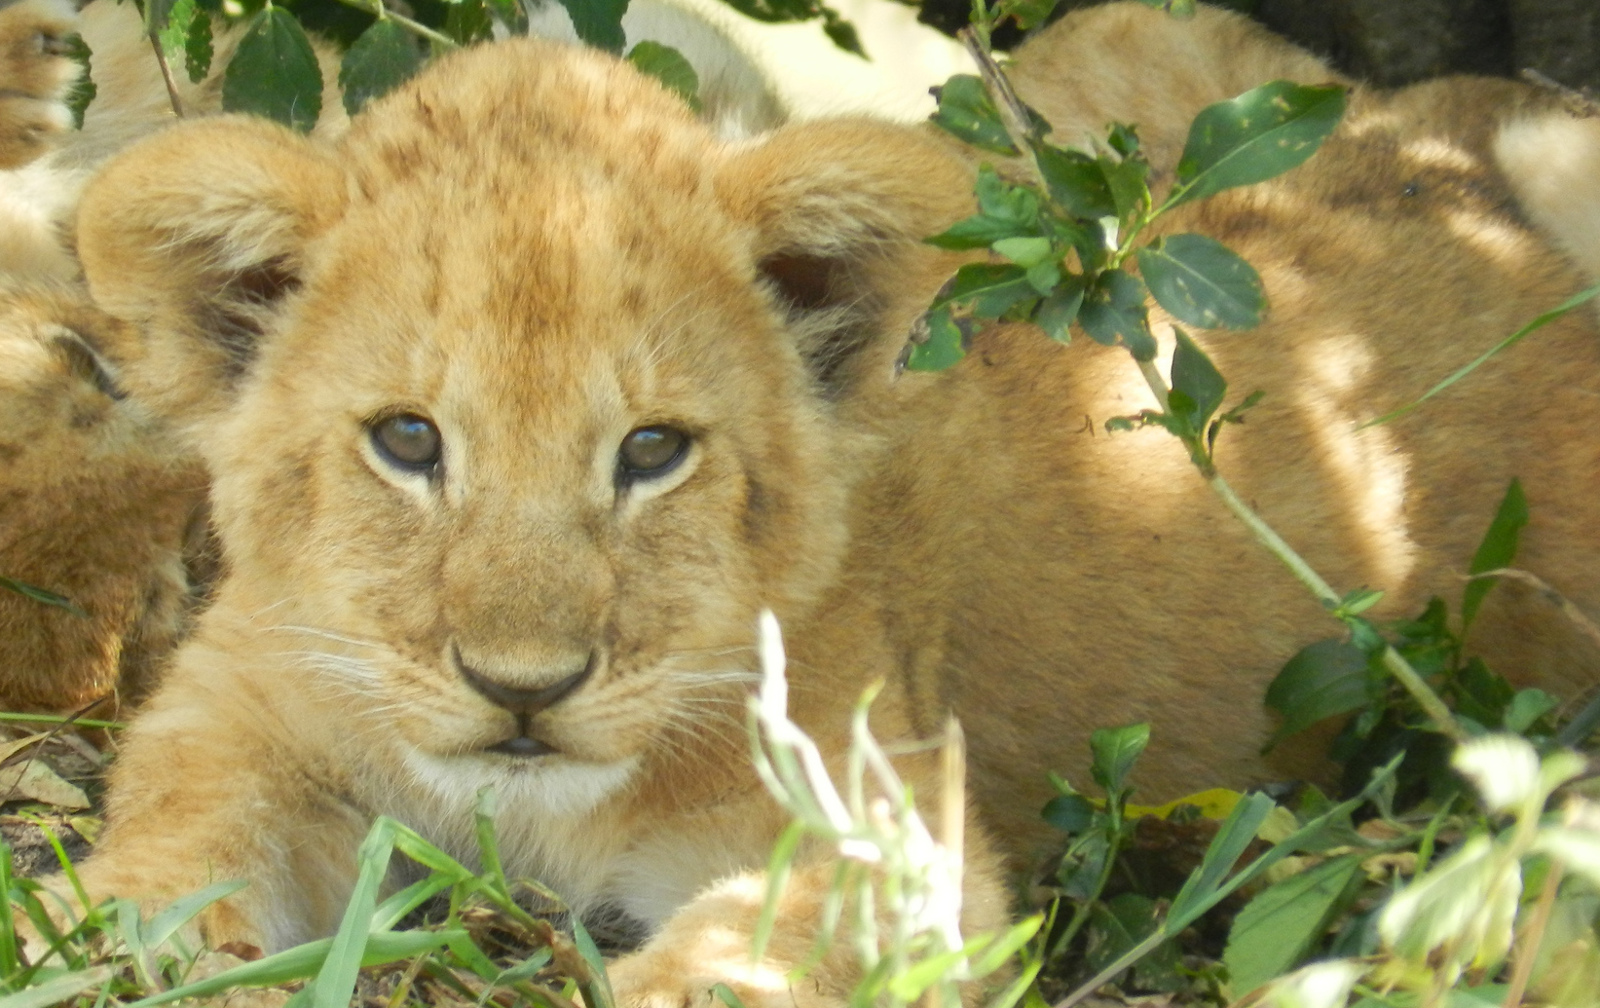 Public Outrage Builds As Denmark Zoo Plans To Dissect Lion Cub Killed For Space